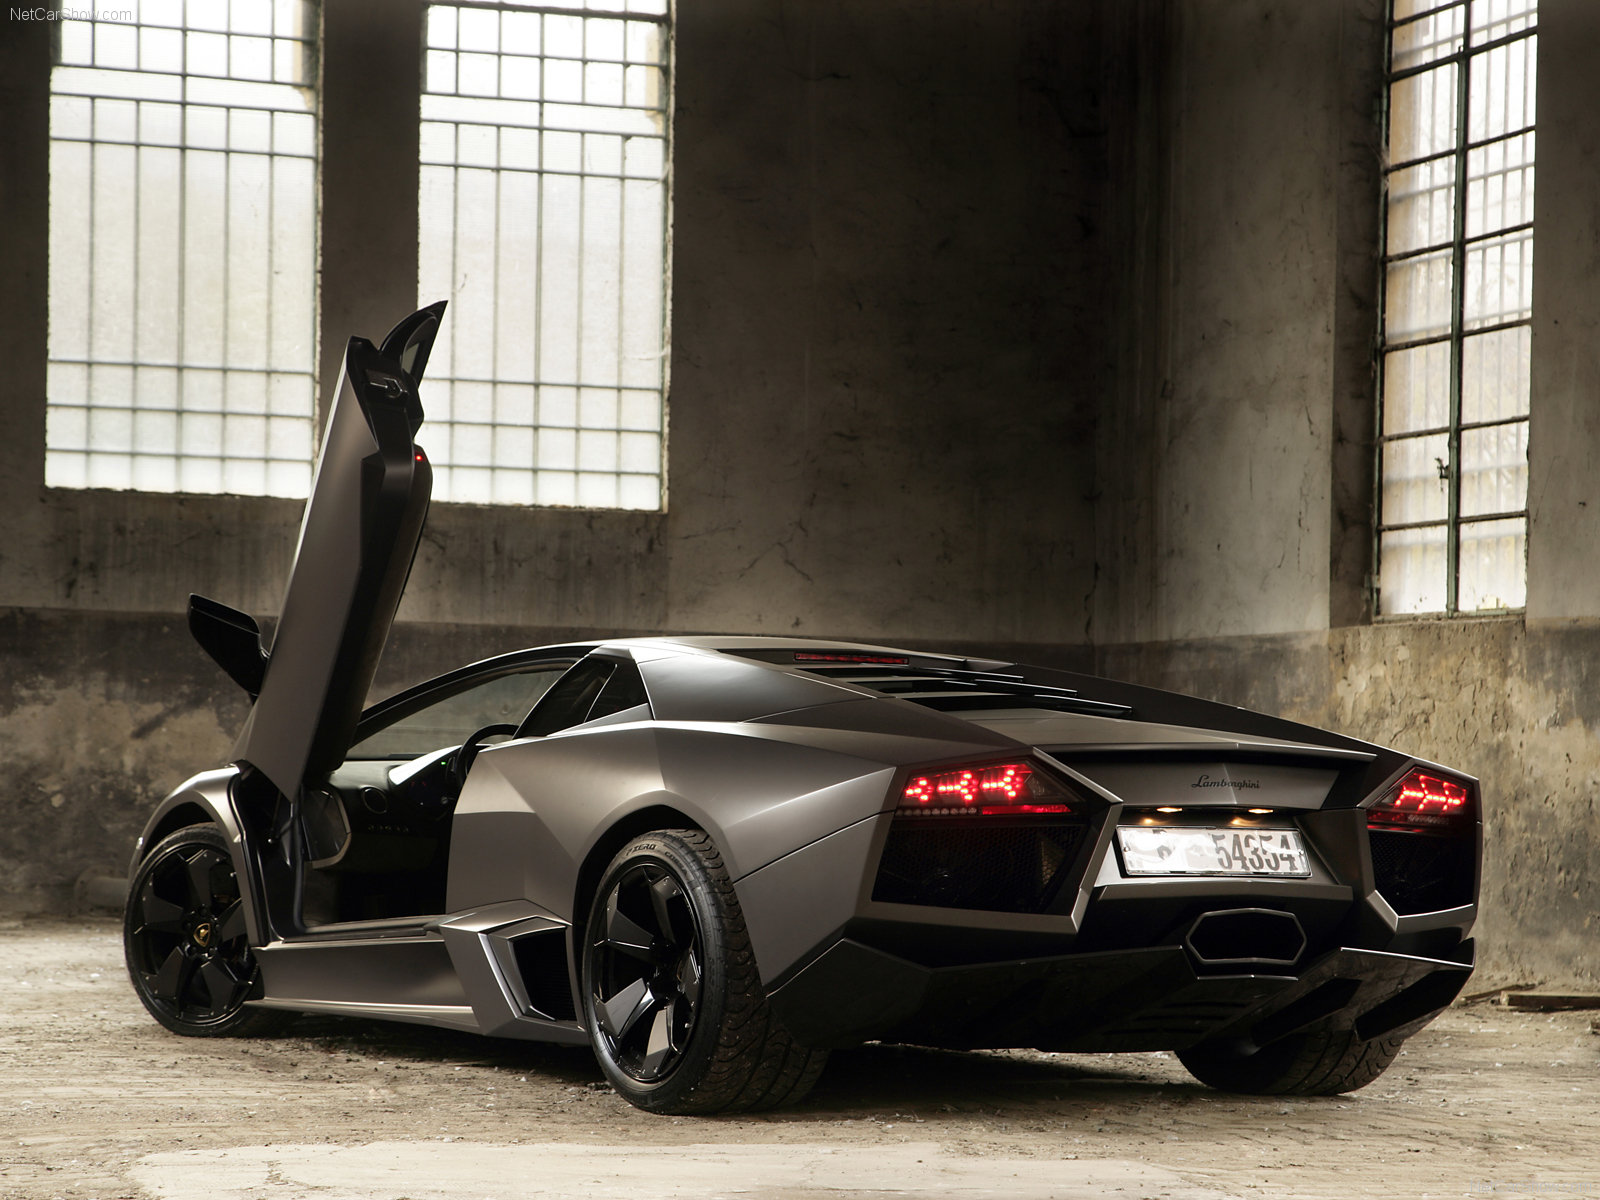 lamborghini reventon image wallpaper - photo #9